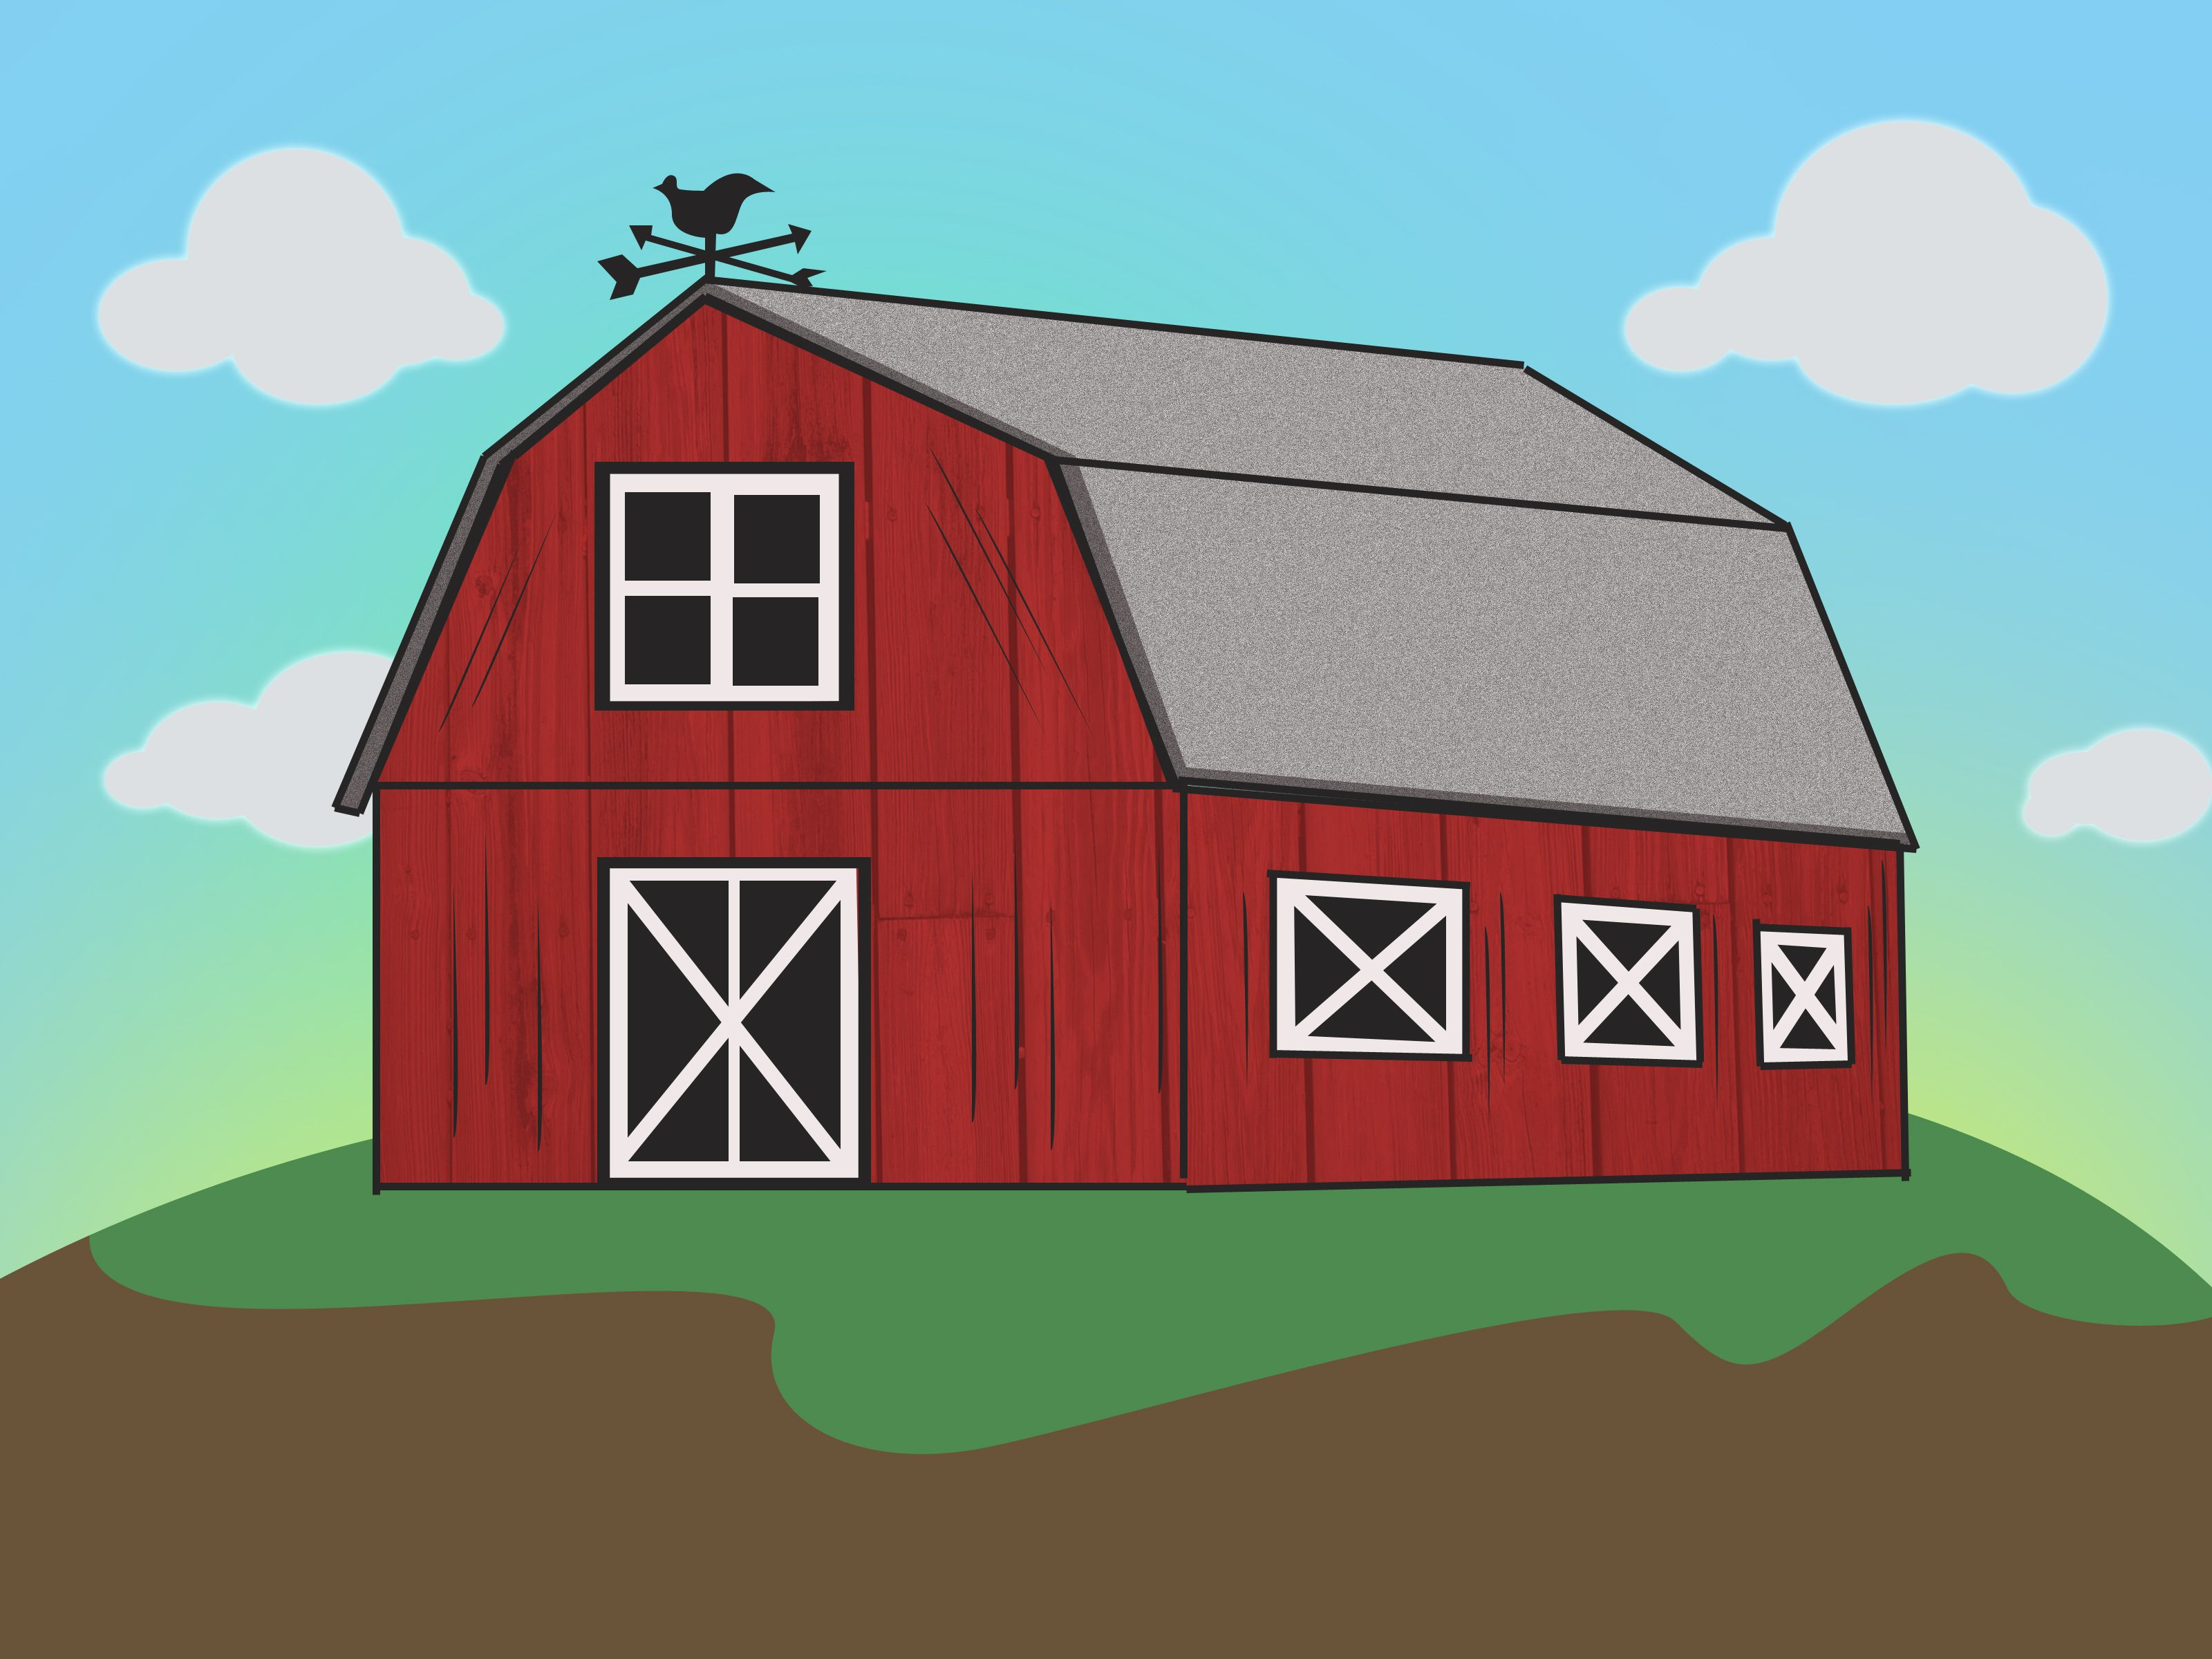 How To Draw A Barn Via WikiHow